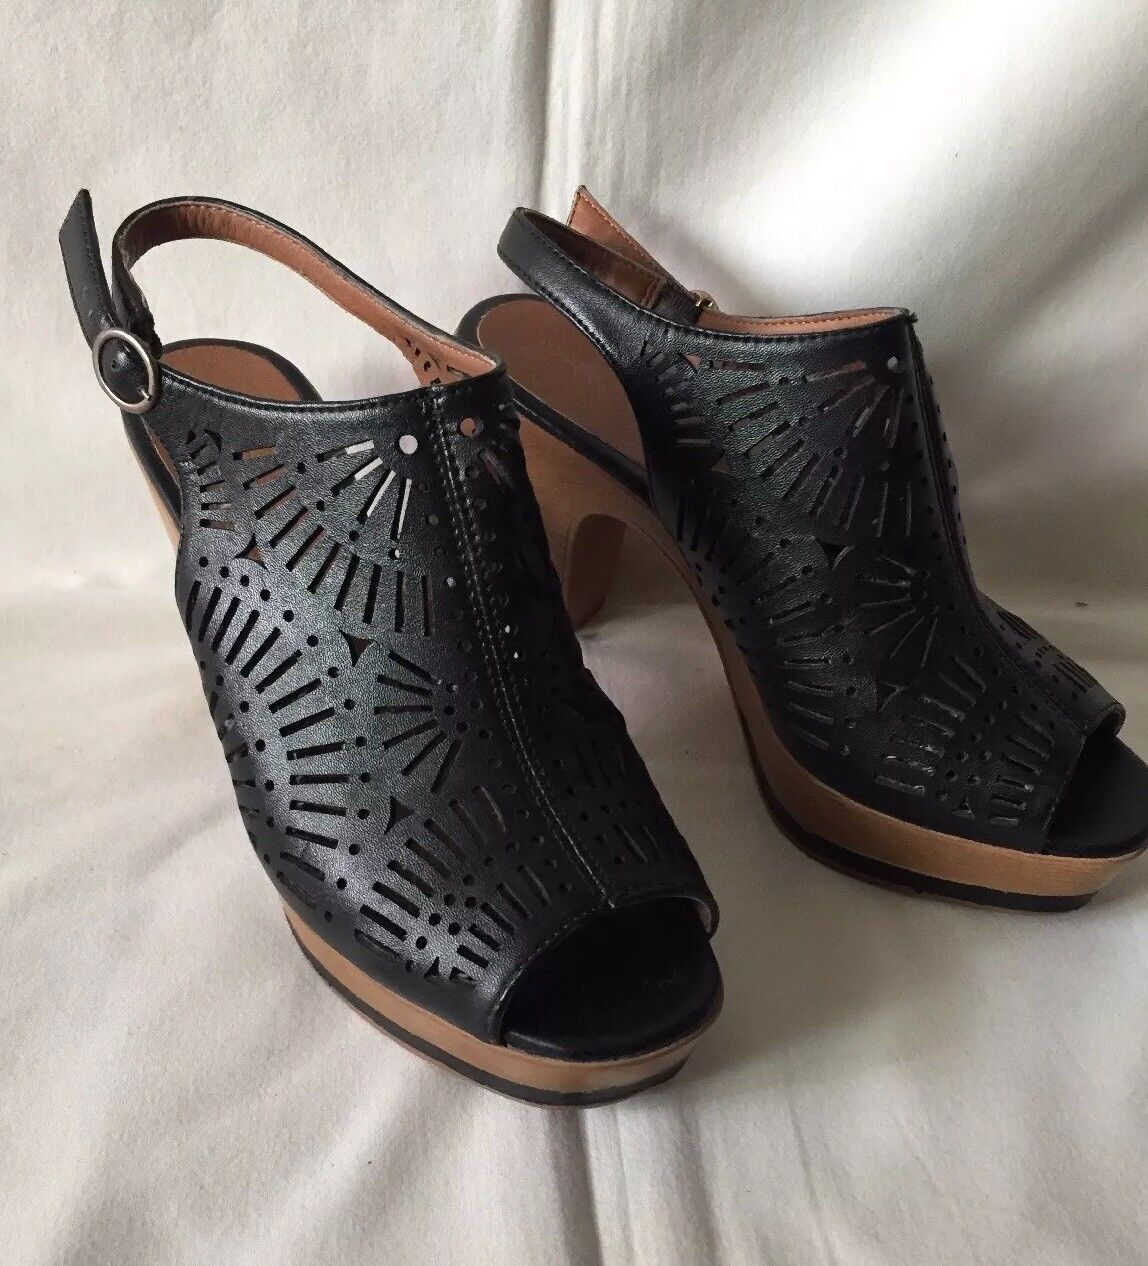 Andrea Black Stapy Wedge Heel Size 8.5